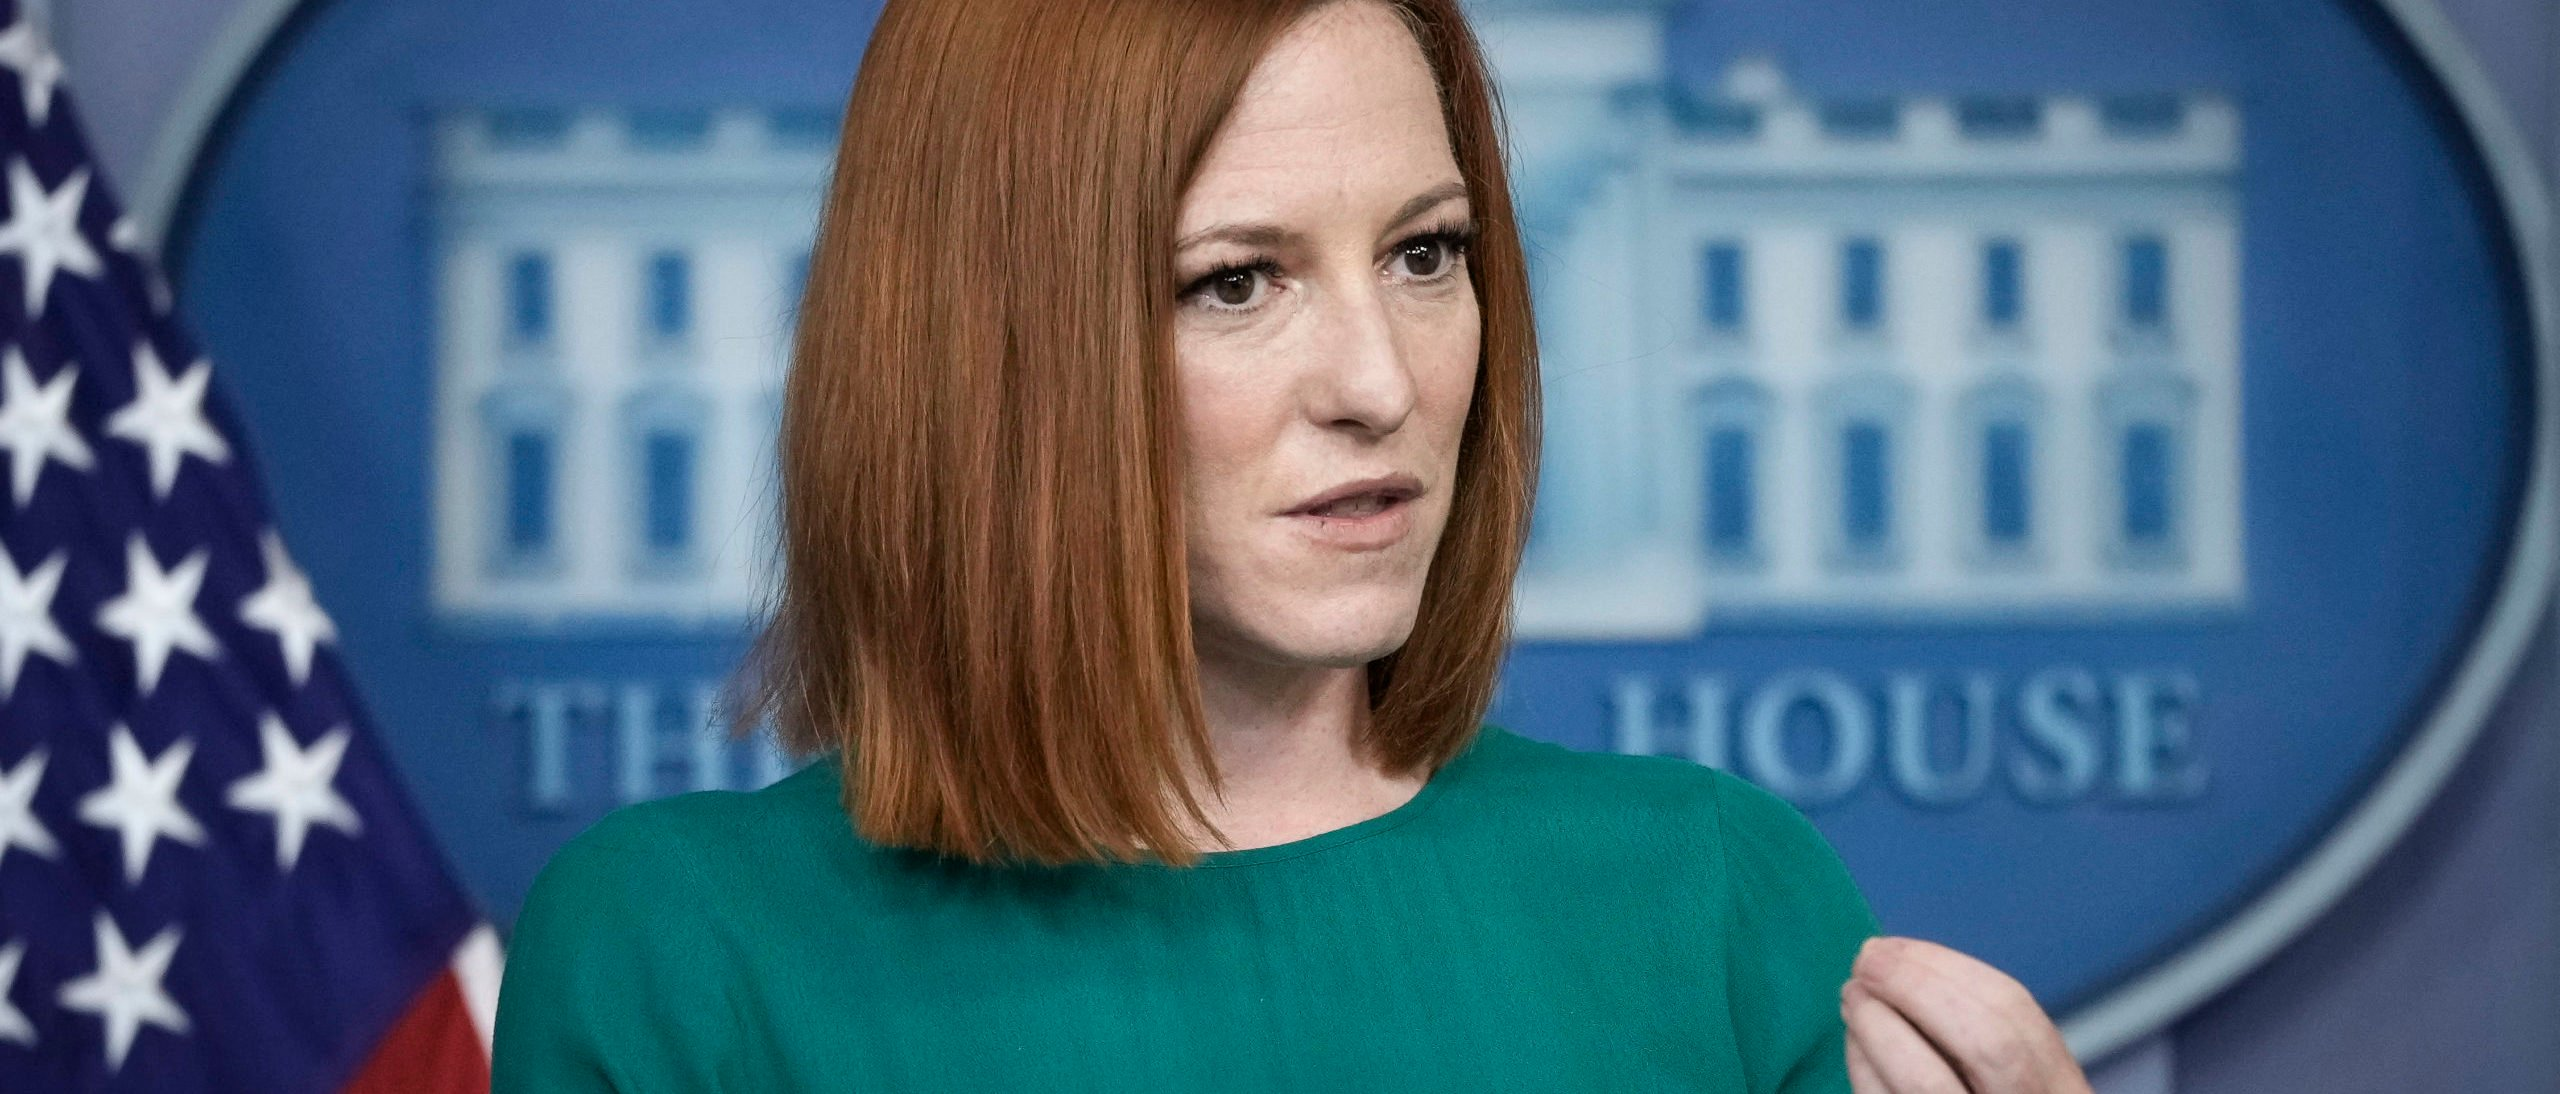 WASHINGTON, DC - APRIL 27: White House Press Secretary Jen Psaki speaks during the daily press briefing the White House on April 27, 2021 in Washington, DC. President Biden announced updated CDC guidance, saying vaccinated Americans do not need to wear a mask outside when in small groups. (Photo by Drew Angerer/Getty Images)